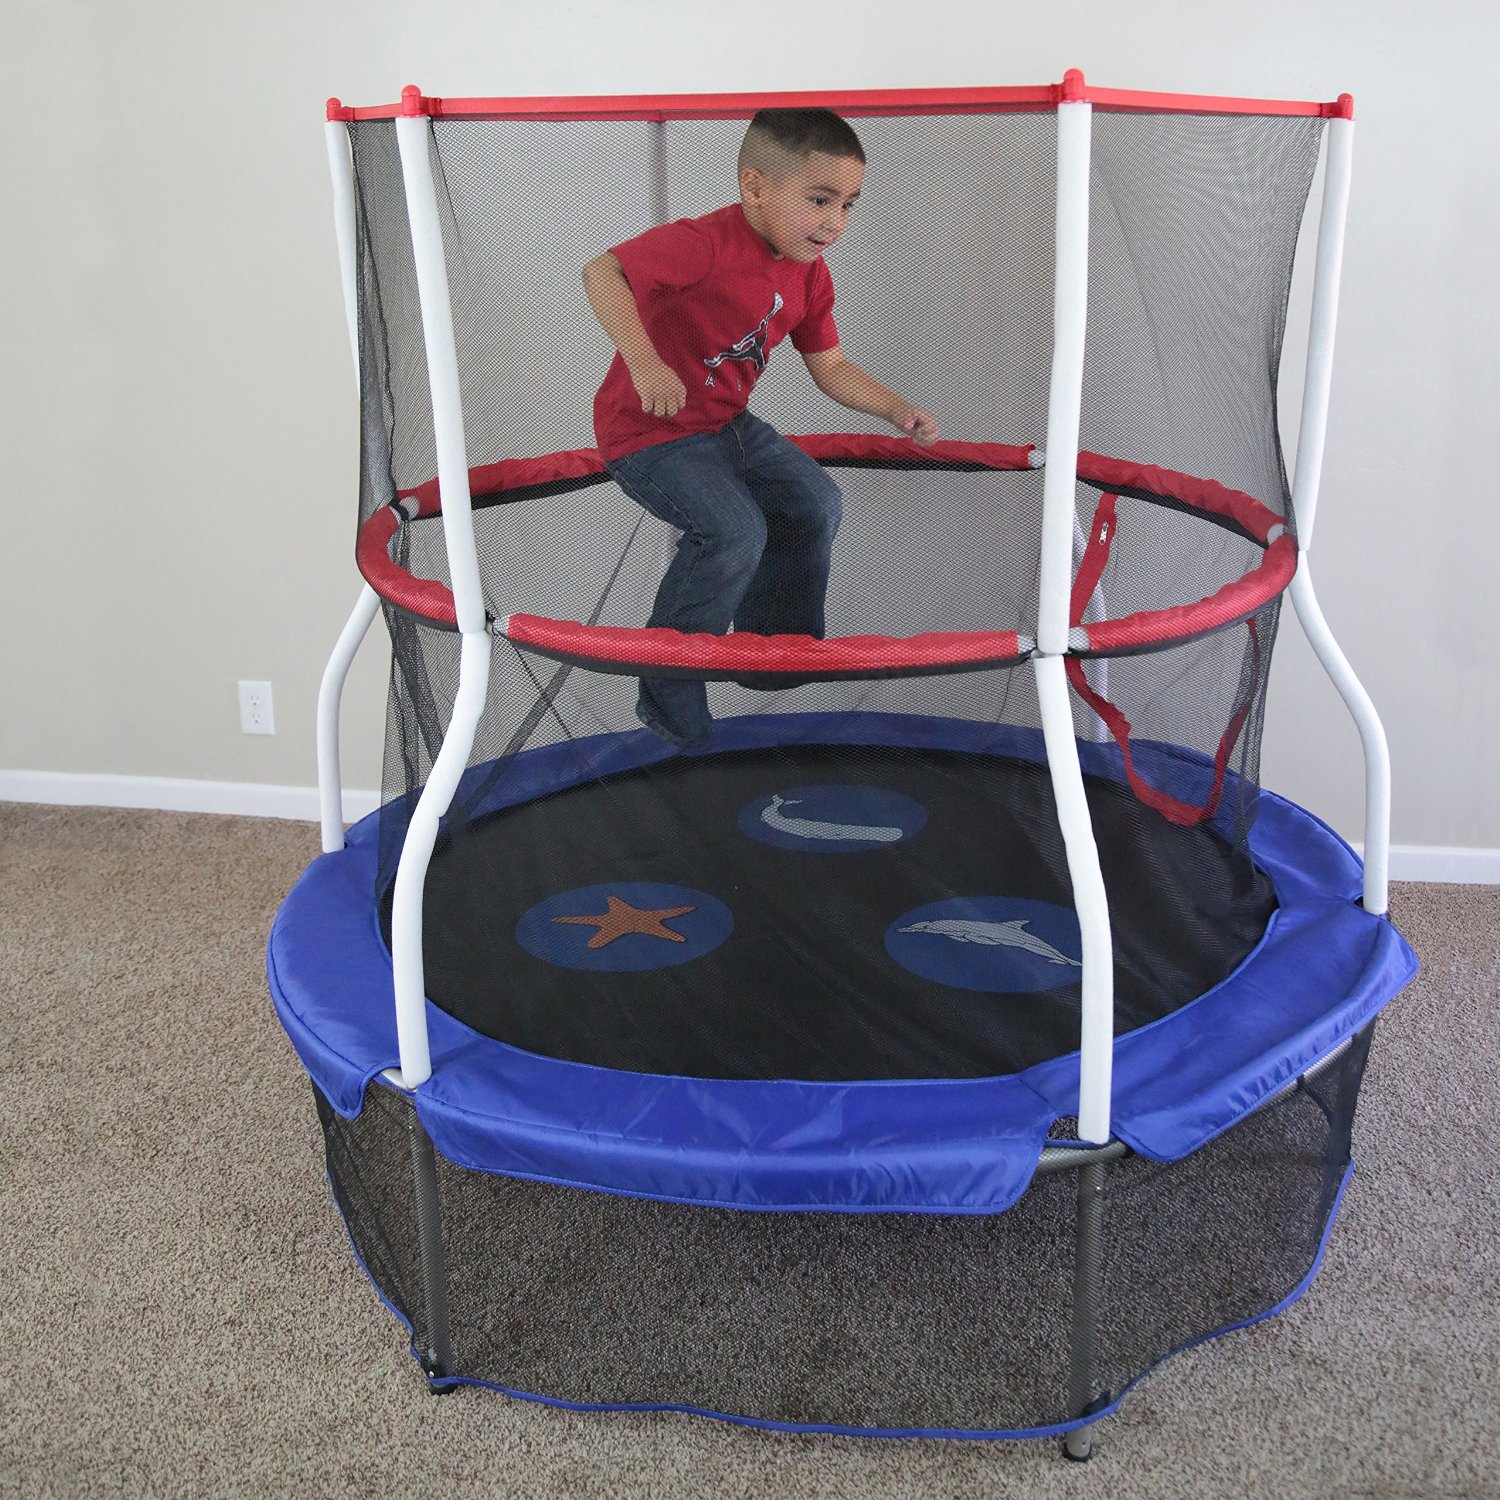 Best Trampoline For Kids Our Top 3 Picks And Reviews